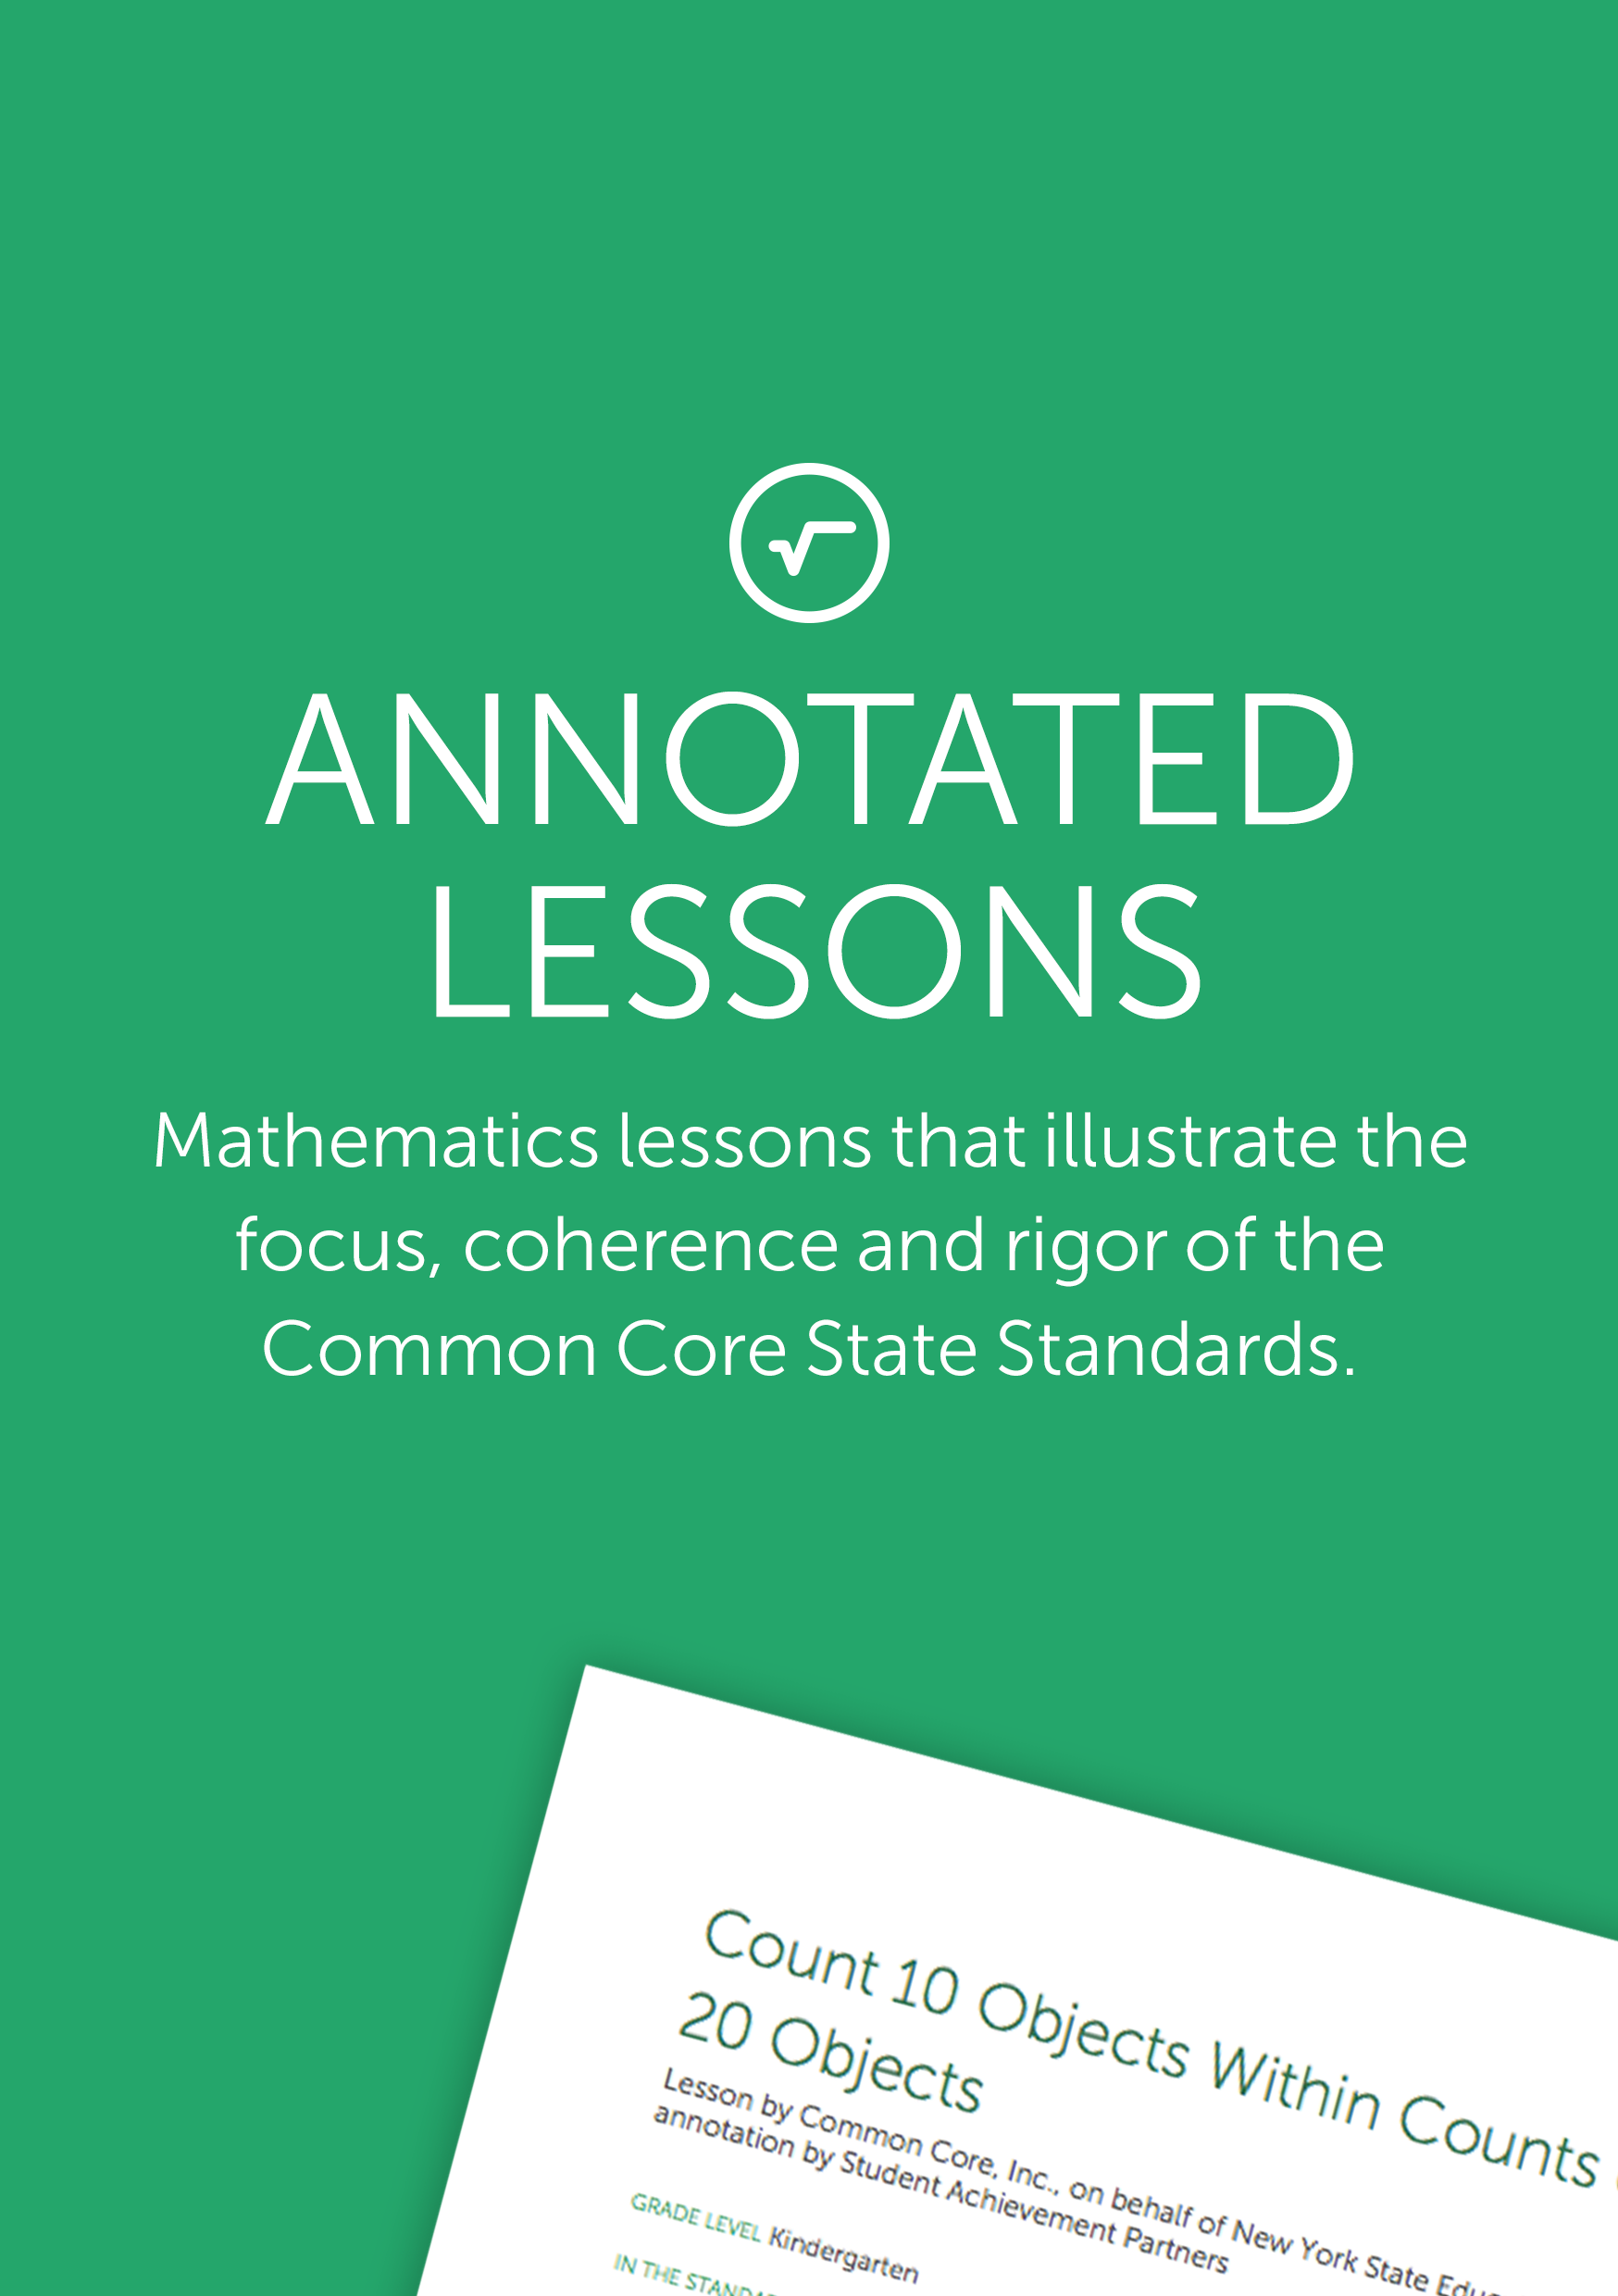 Free Math Lessons That Illustrate The Shifts Of Focus